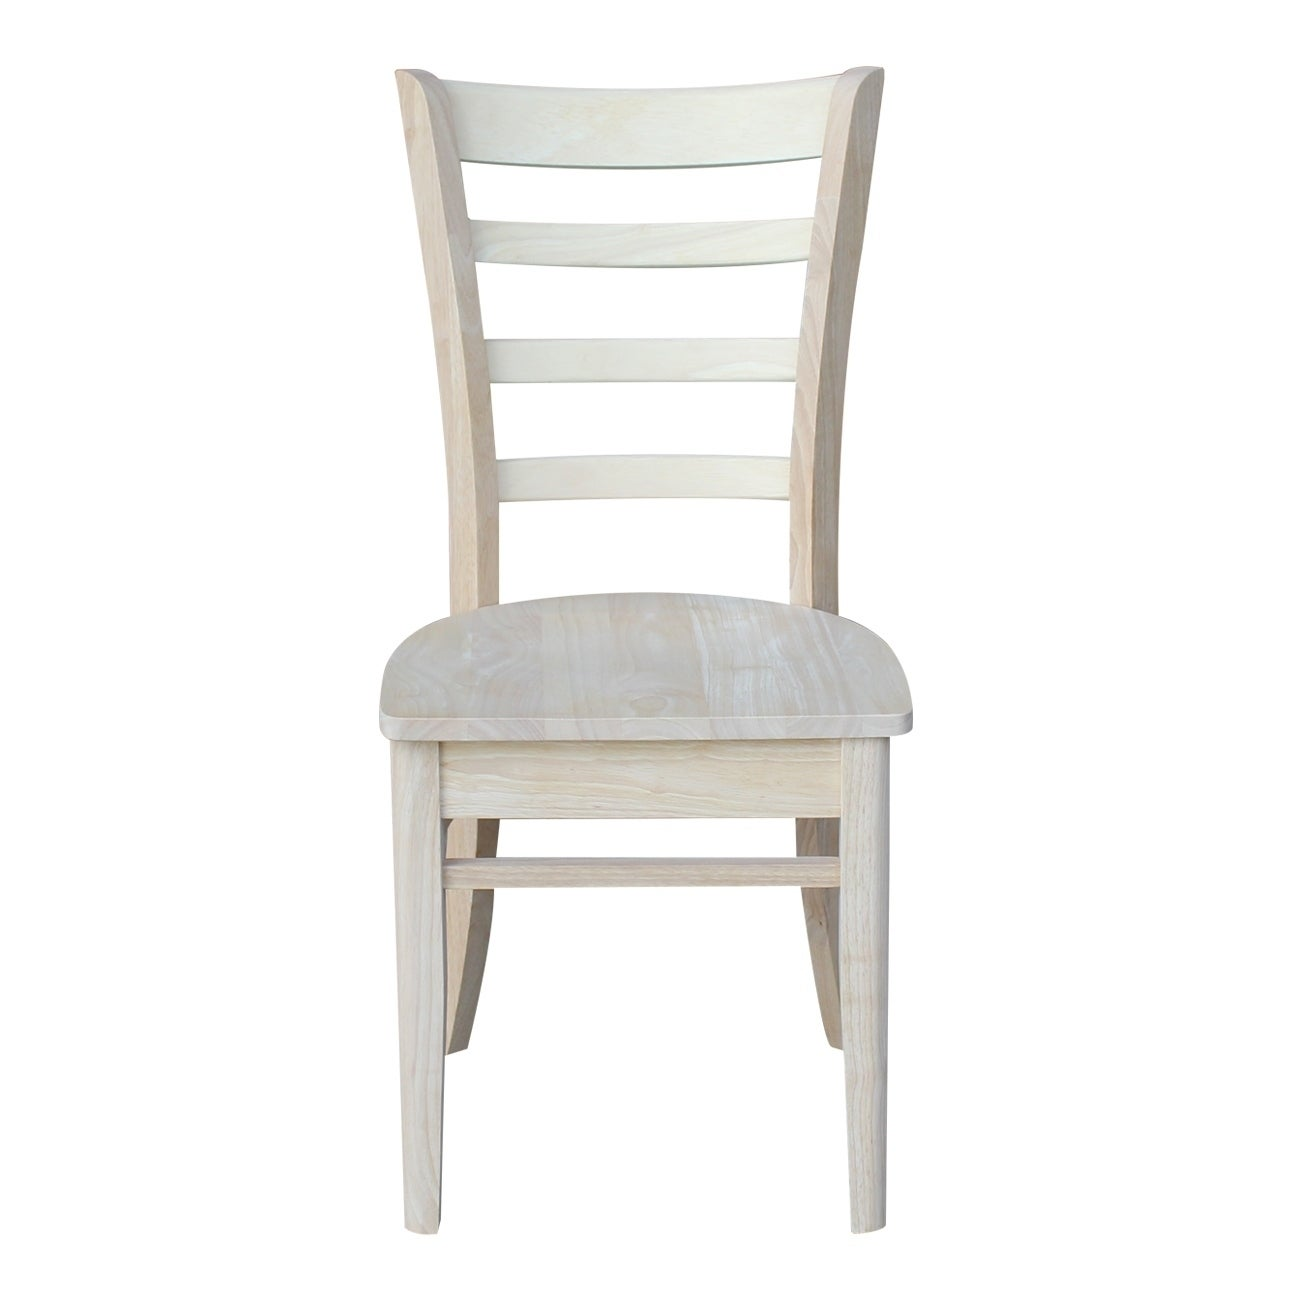 Shop international concepts emily unfinished wooden dining chairs set of 2 free shipping today overstock com 10884934